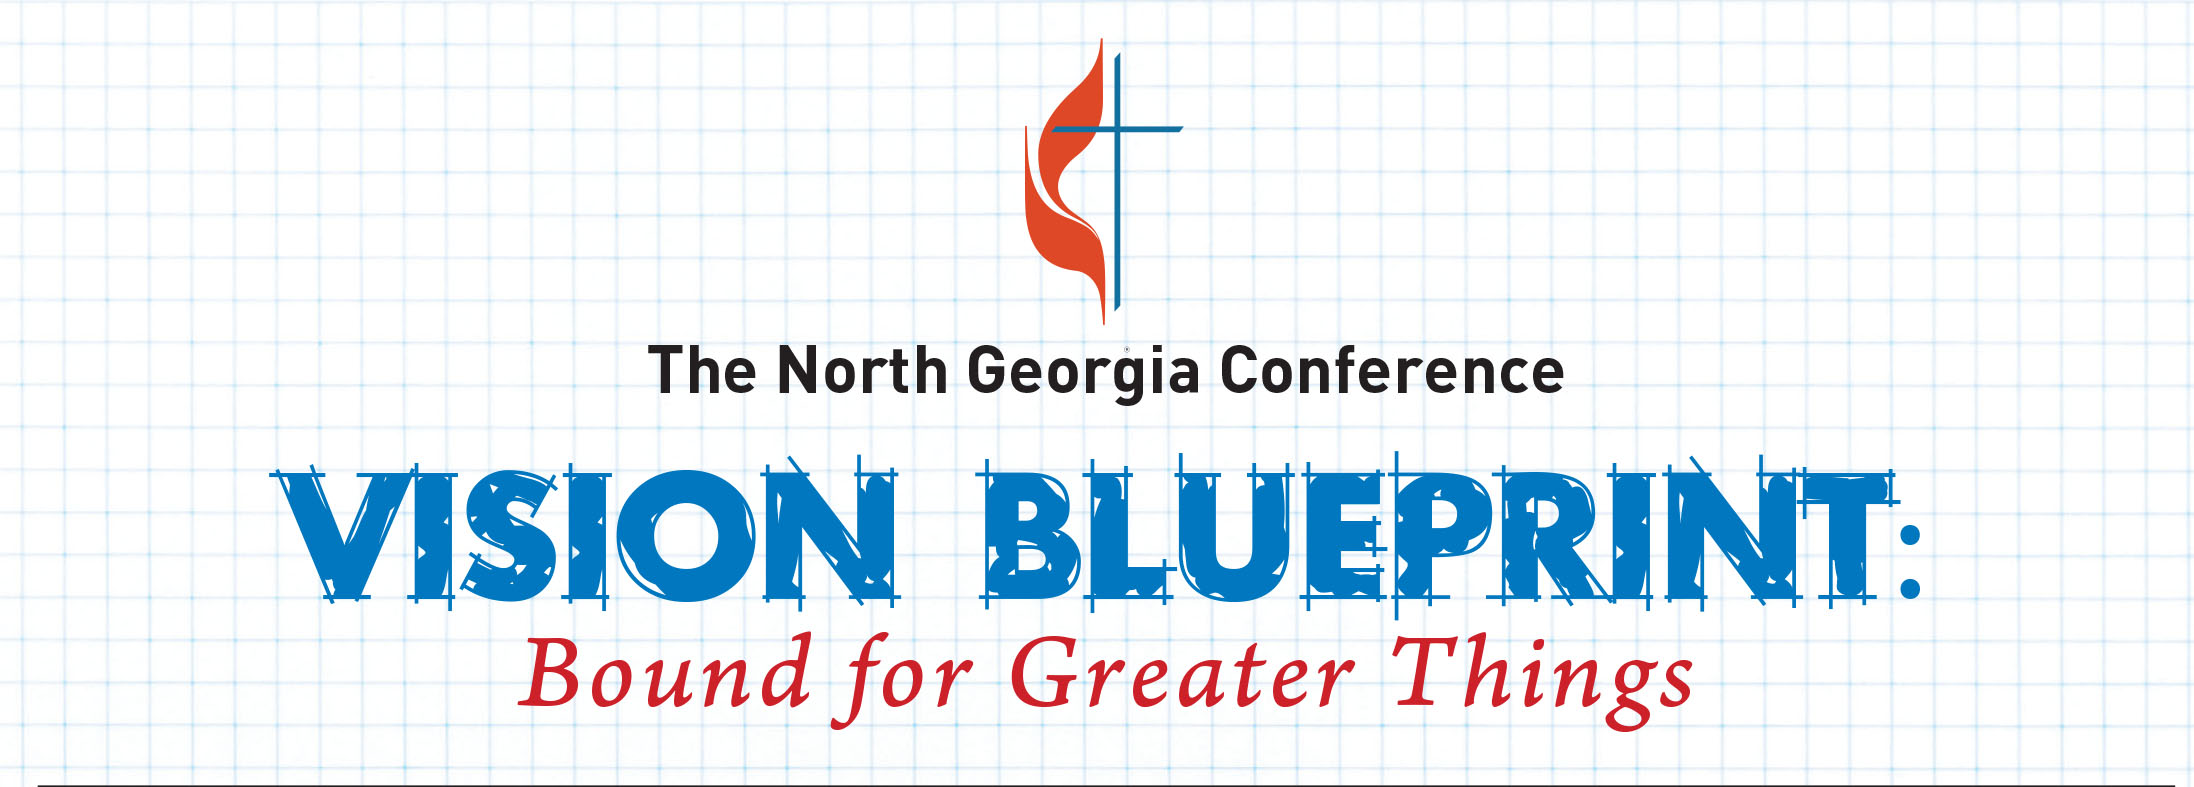 Ngumc annual conference vision blueprint the north georgia conference vision blueprint bound for greater things includes 14 points of focus for conference leadership committees and local malvernweather Choice Image